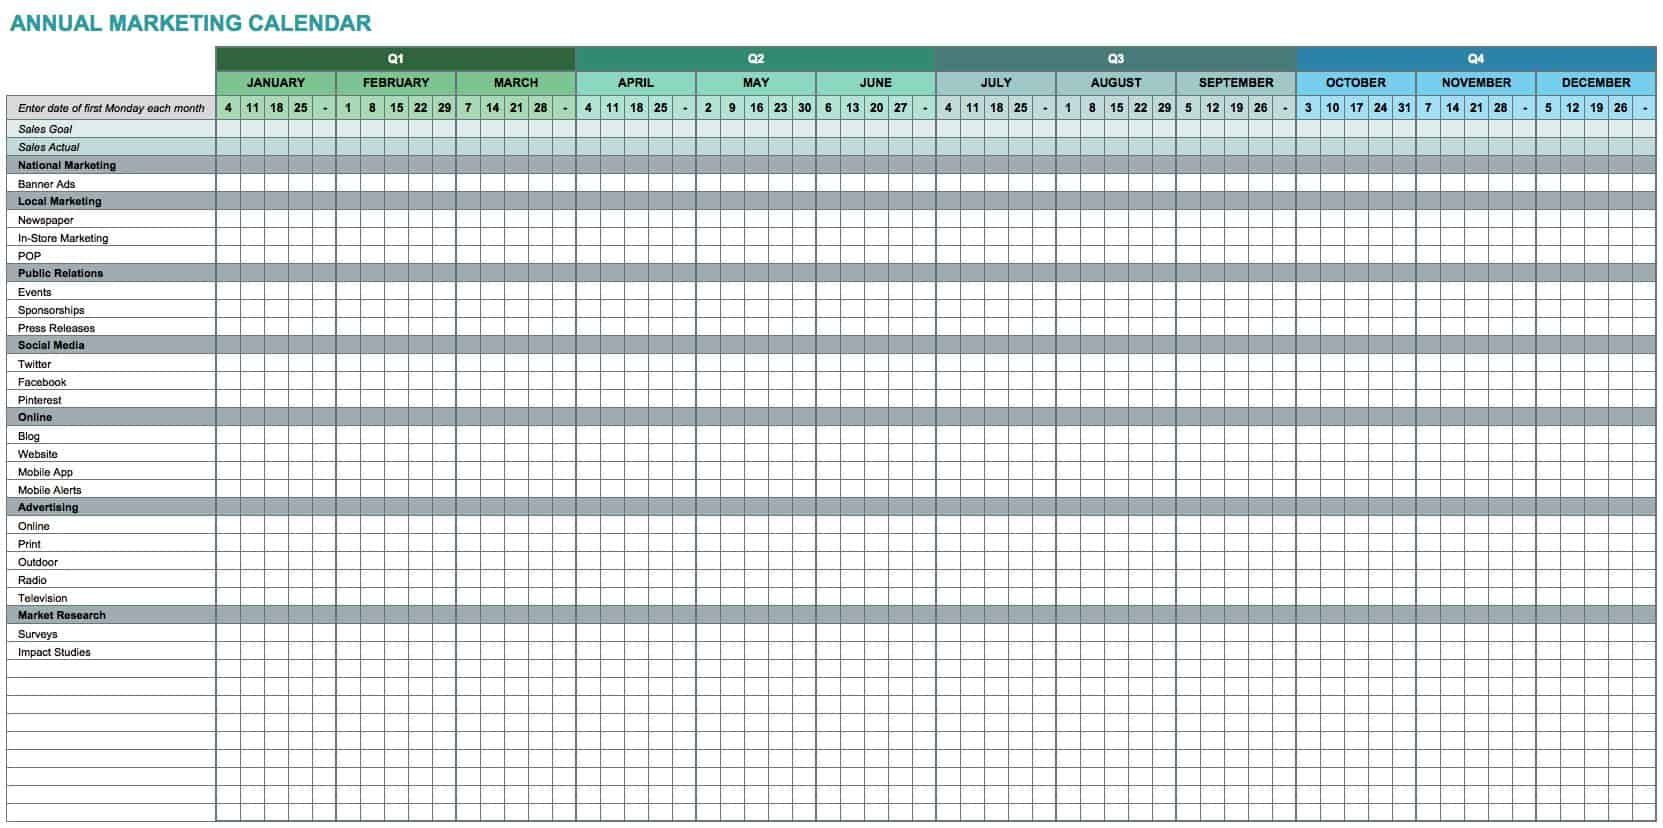 006 Stunning Microsoft Excel Calendar Template Idea  Office 2013 M Yearly 2019Full